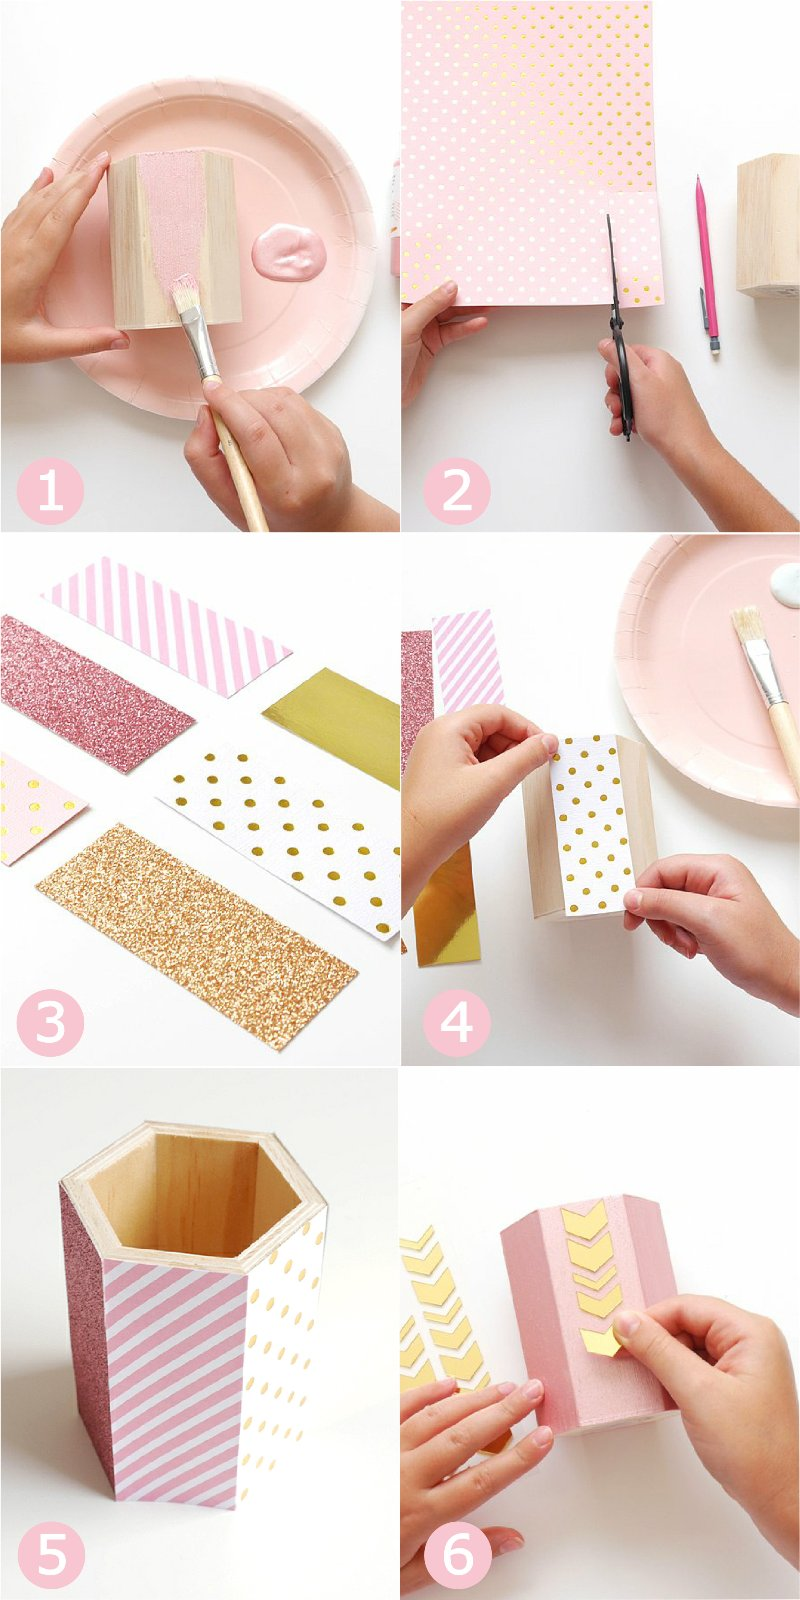 Gold Foil DIY Projects for Your Office Decor - easy ideas to help keep your office looking pretty and organized, a great back to school craft! by BirdsParty.com @birdsparty #officedecor #backtoschoolcrafts #backtoschoolprojects #diydecor #diyofficedecor #goldfoil #customofficesupplies